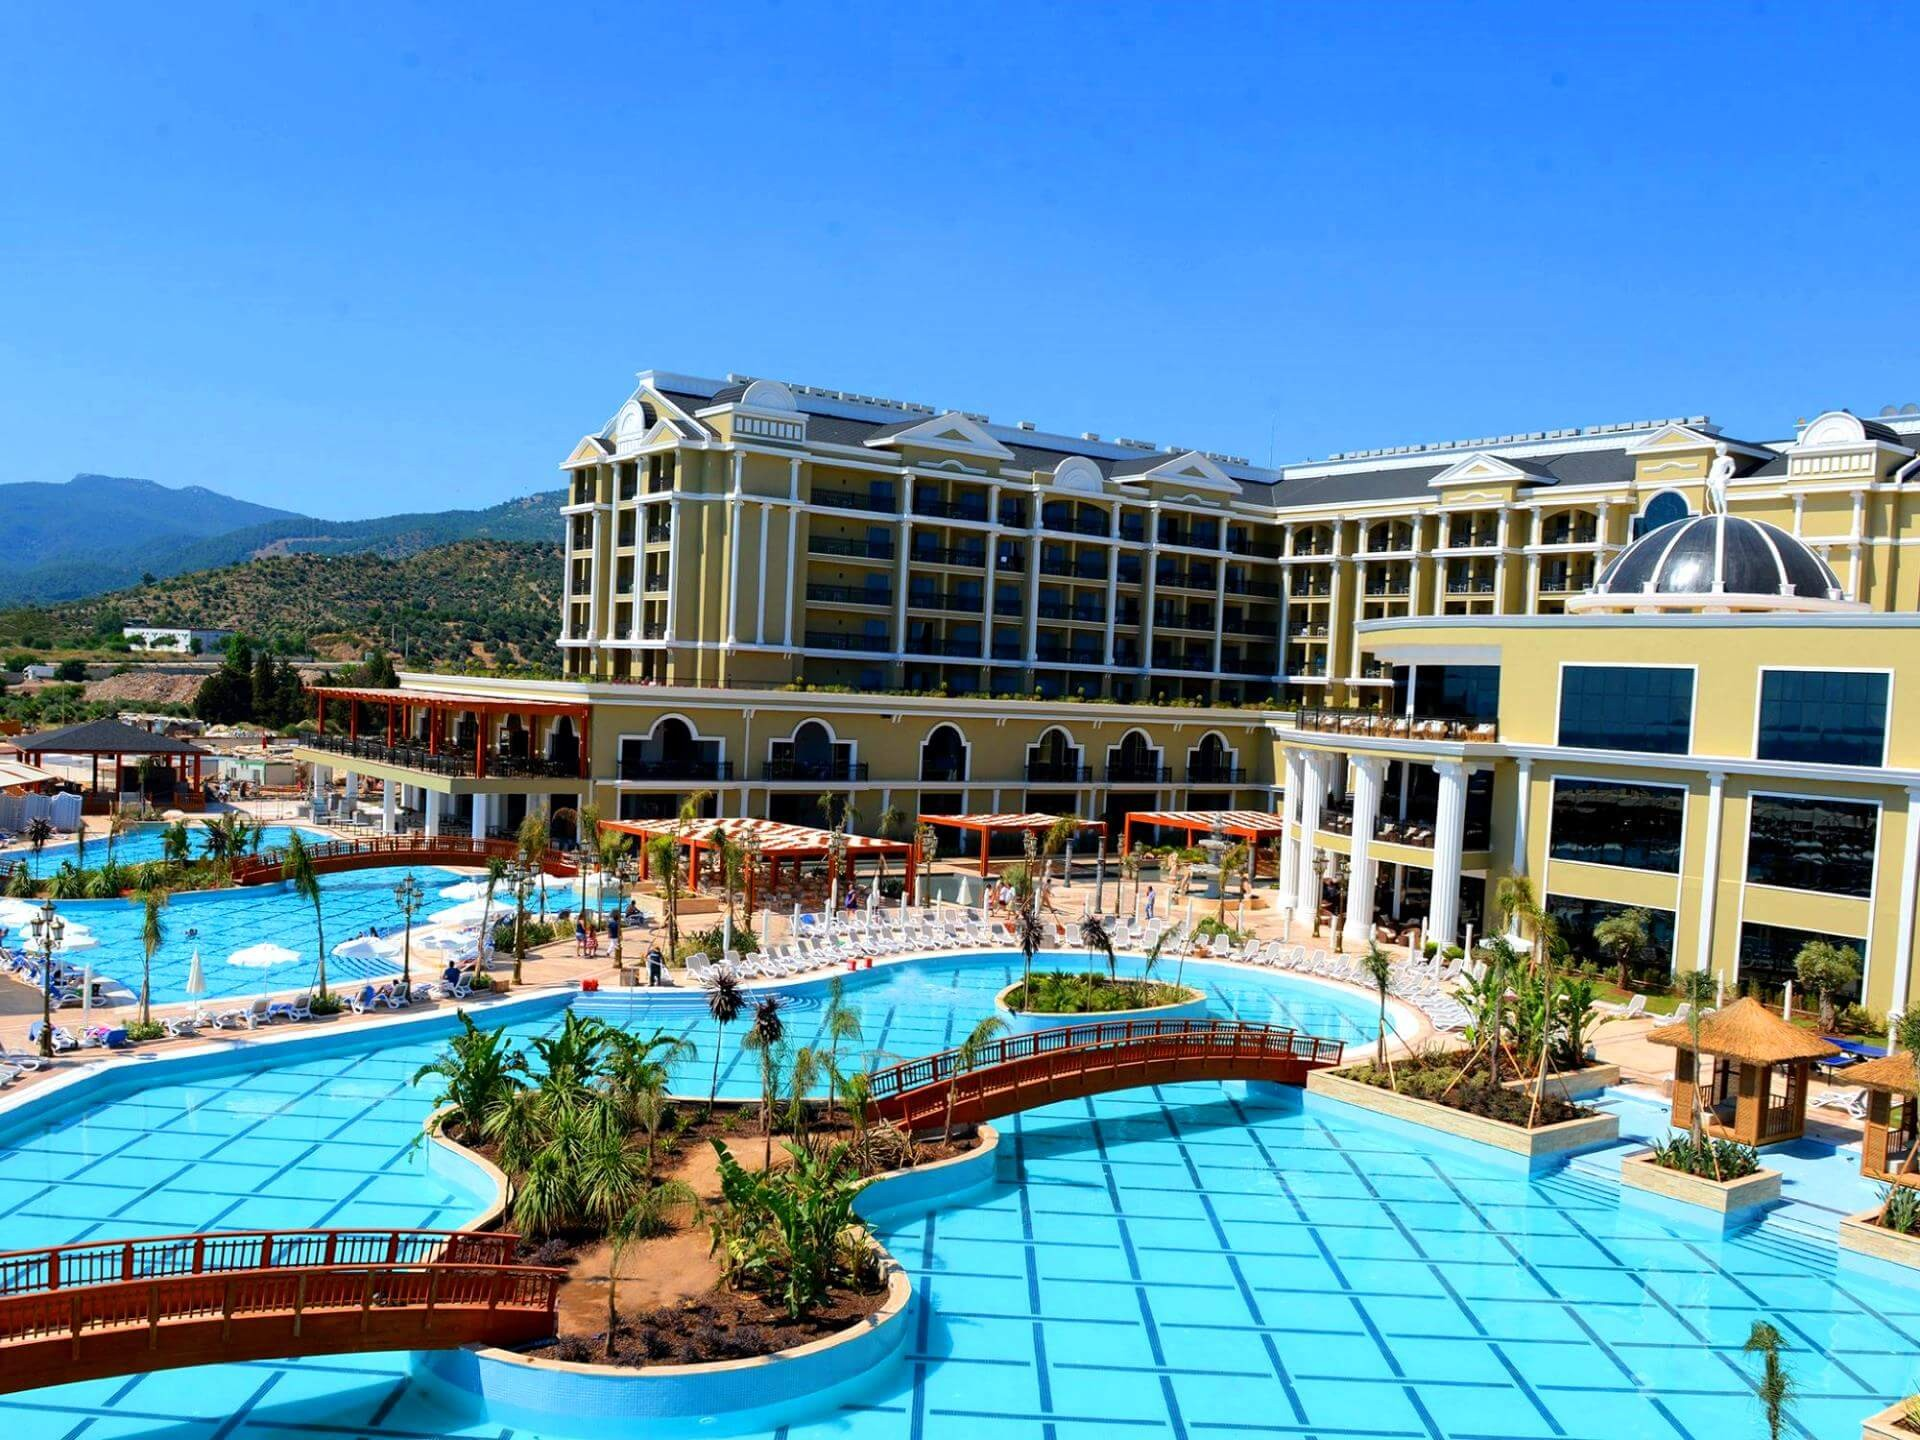 Hotel Sunis Efes Royal Palace - общ изглед